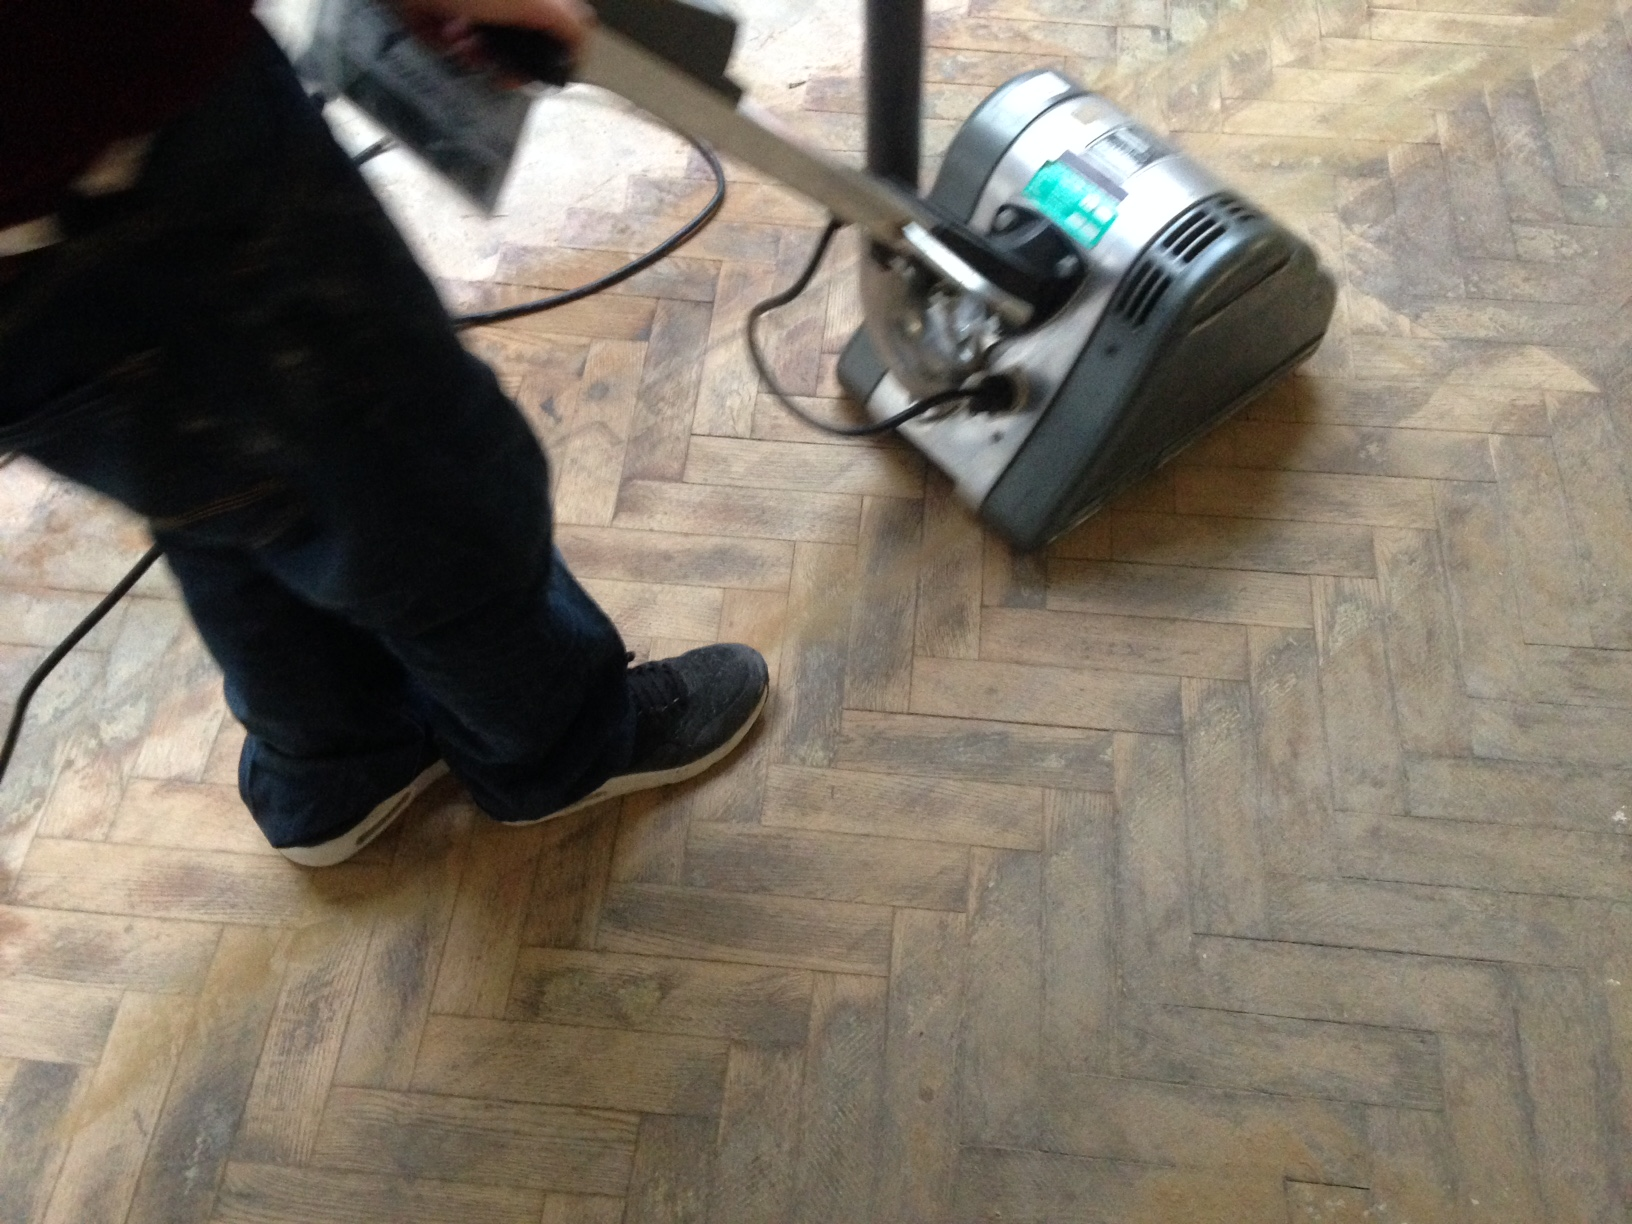 Sanding the floor with an electric floor sander